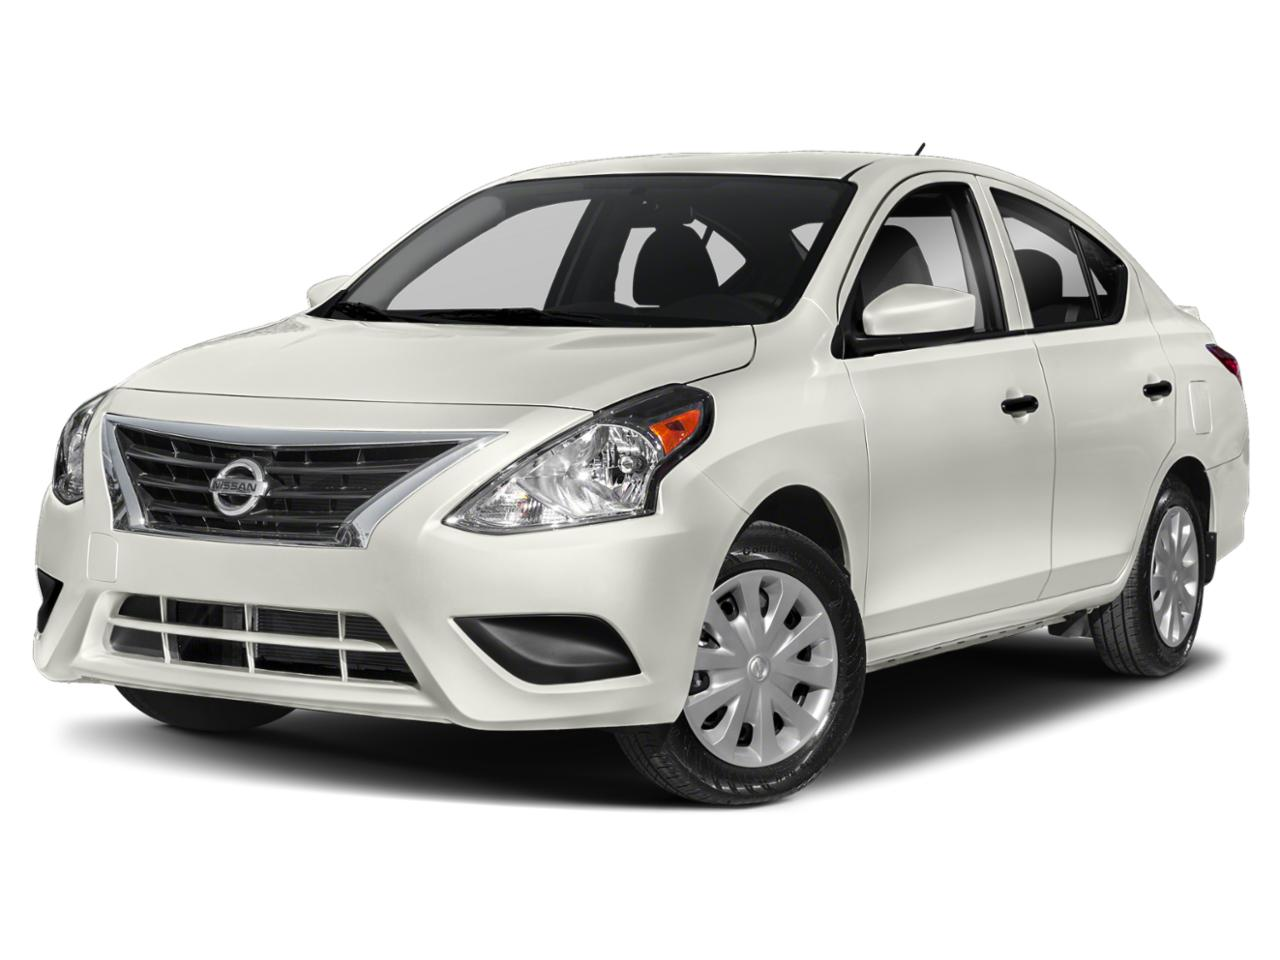 2019 Nissan Versa Sedan Vehicle Photo in Odessa, TX 79762